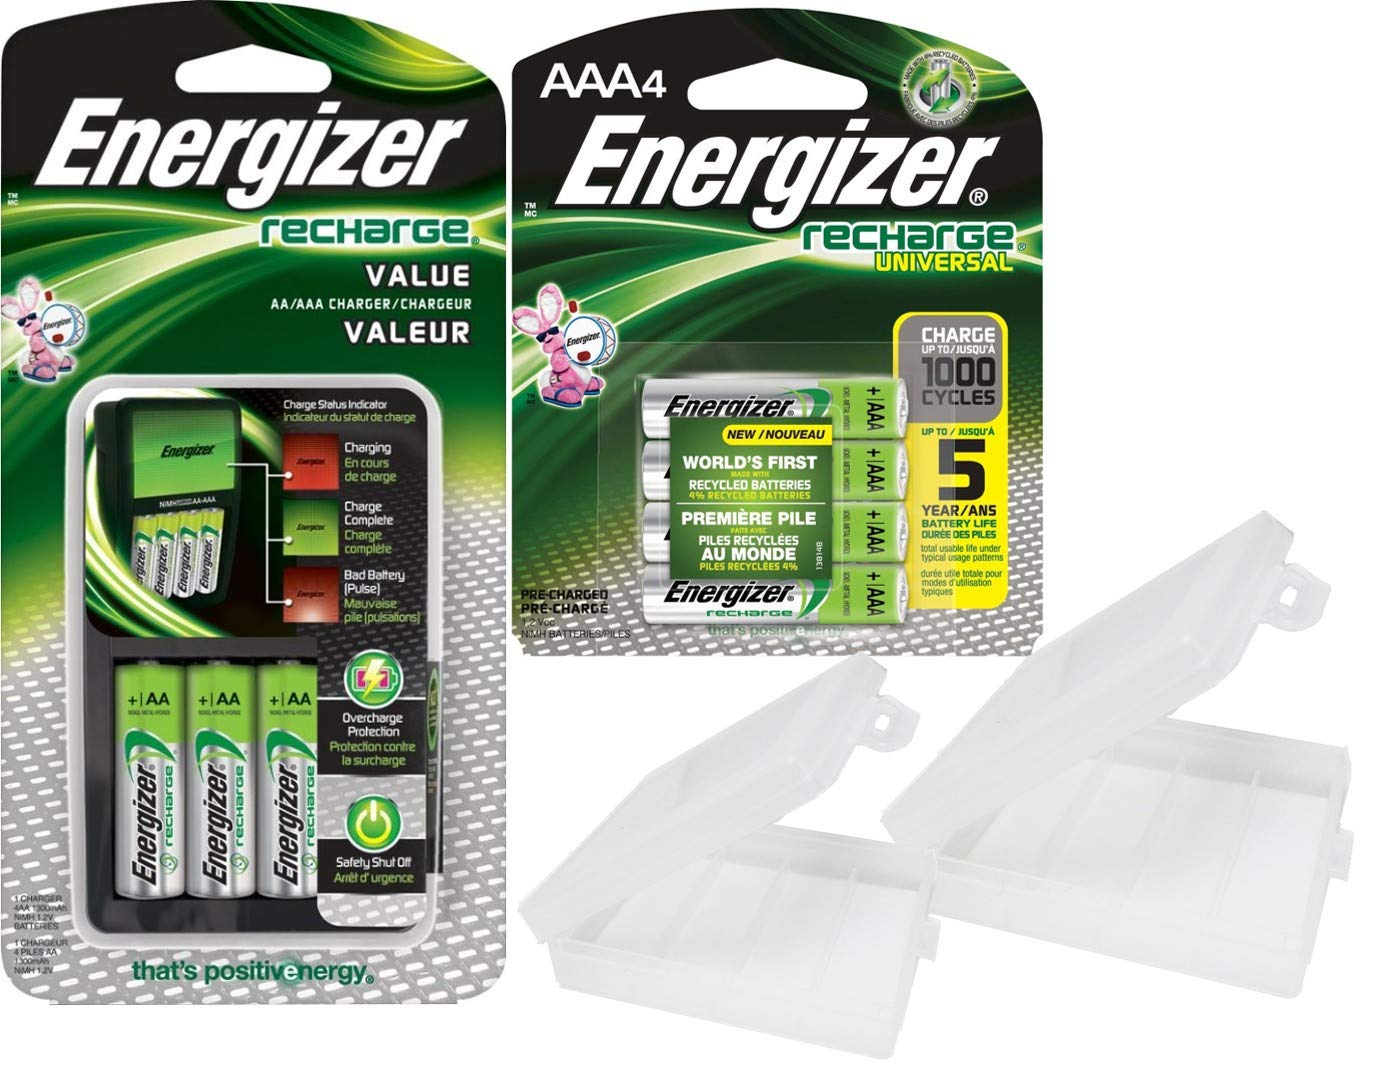 Energizer Recharge Power Pack